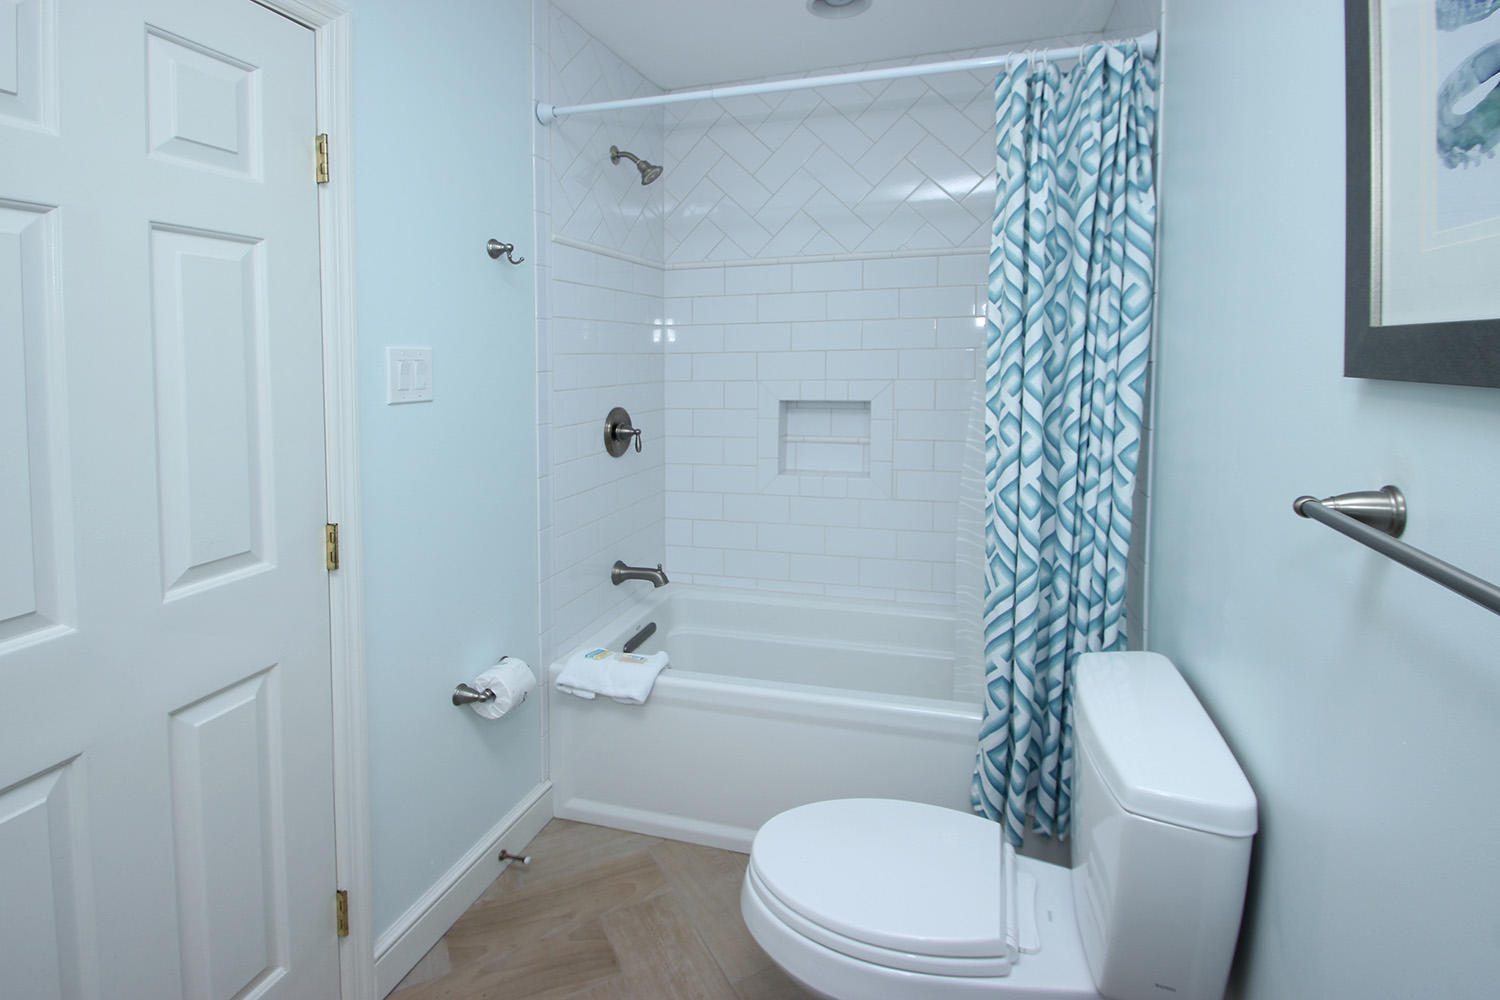 Bath for twin bedroom - mid-level